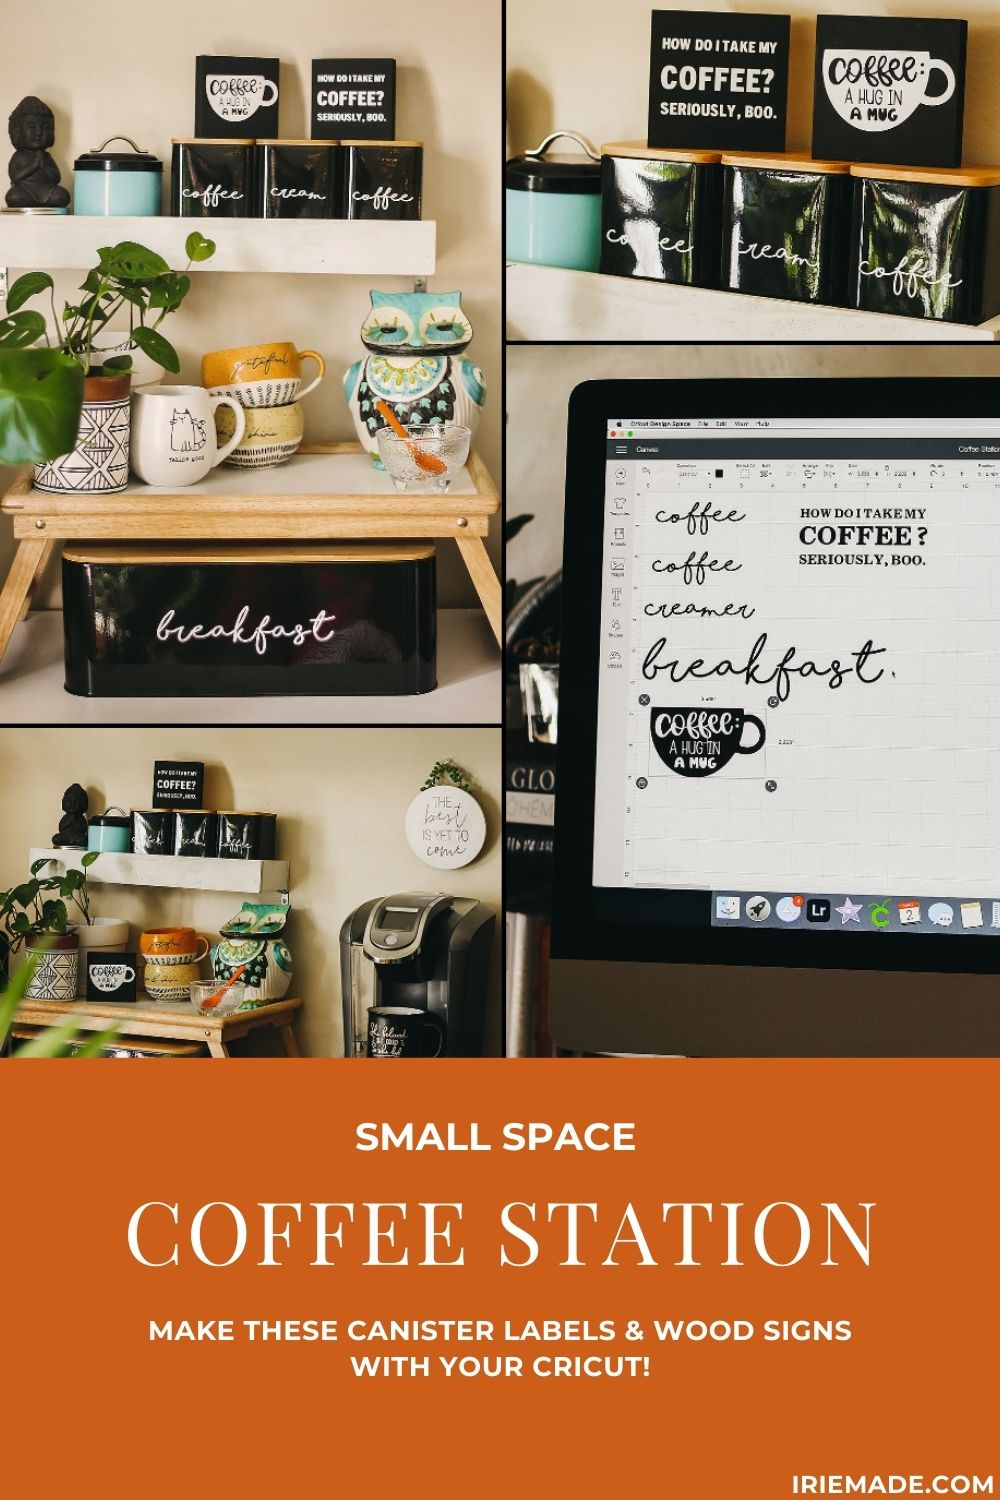 Small Space Coffee Station: Cricut Canister Labels & Wood Signs